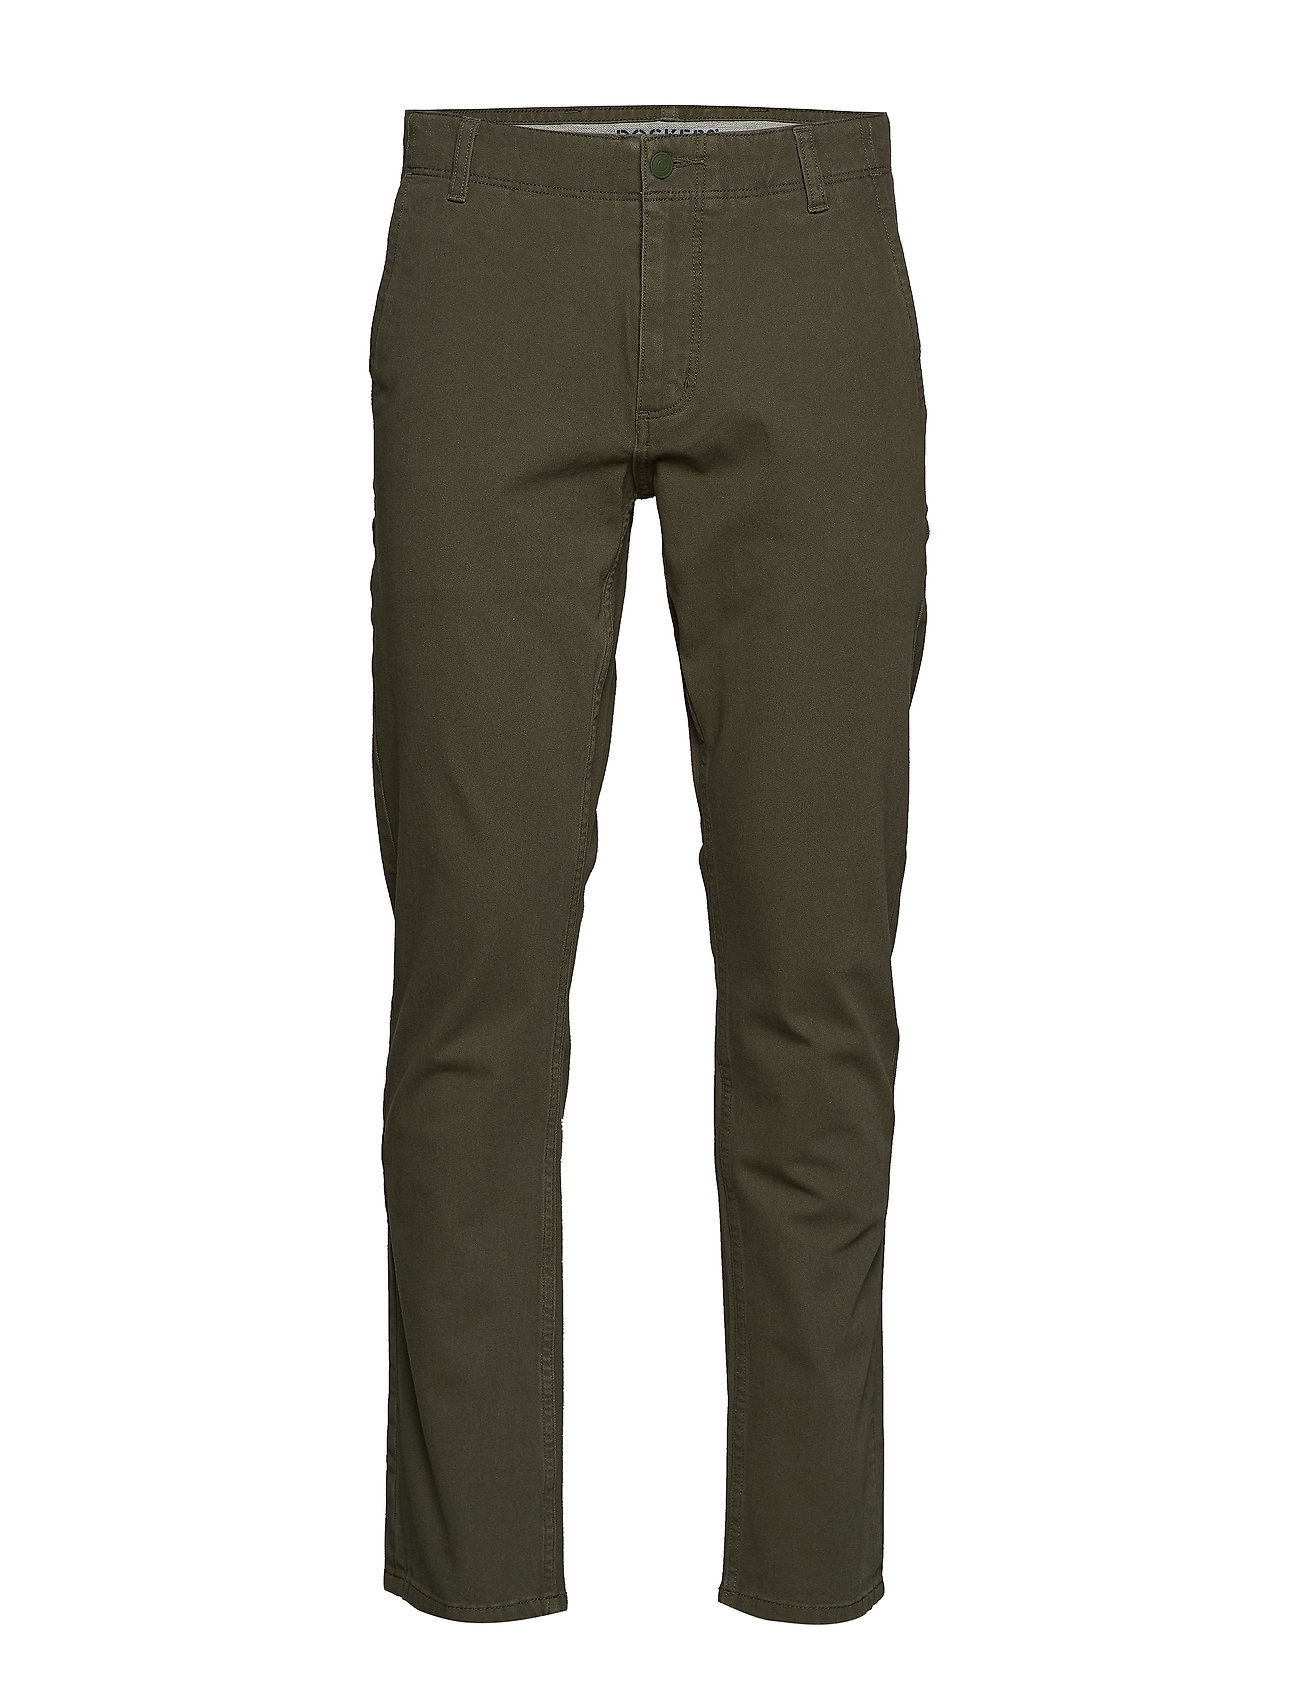 Dockers ALPHA KHAKI 360 DOCKERS OLIVE - GREENS